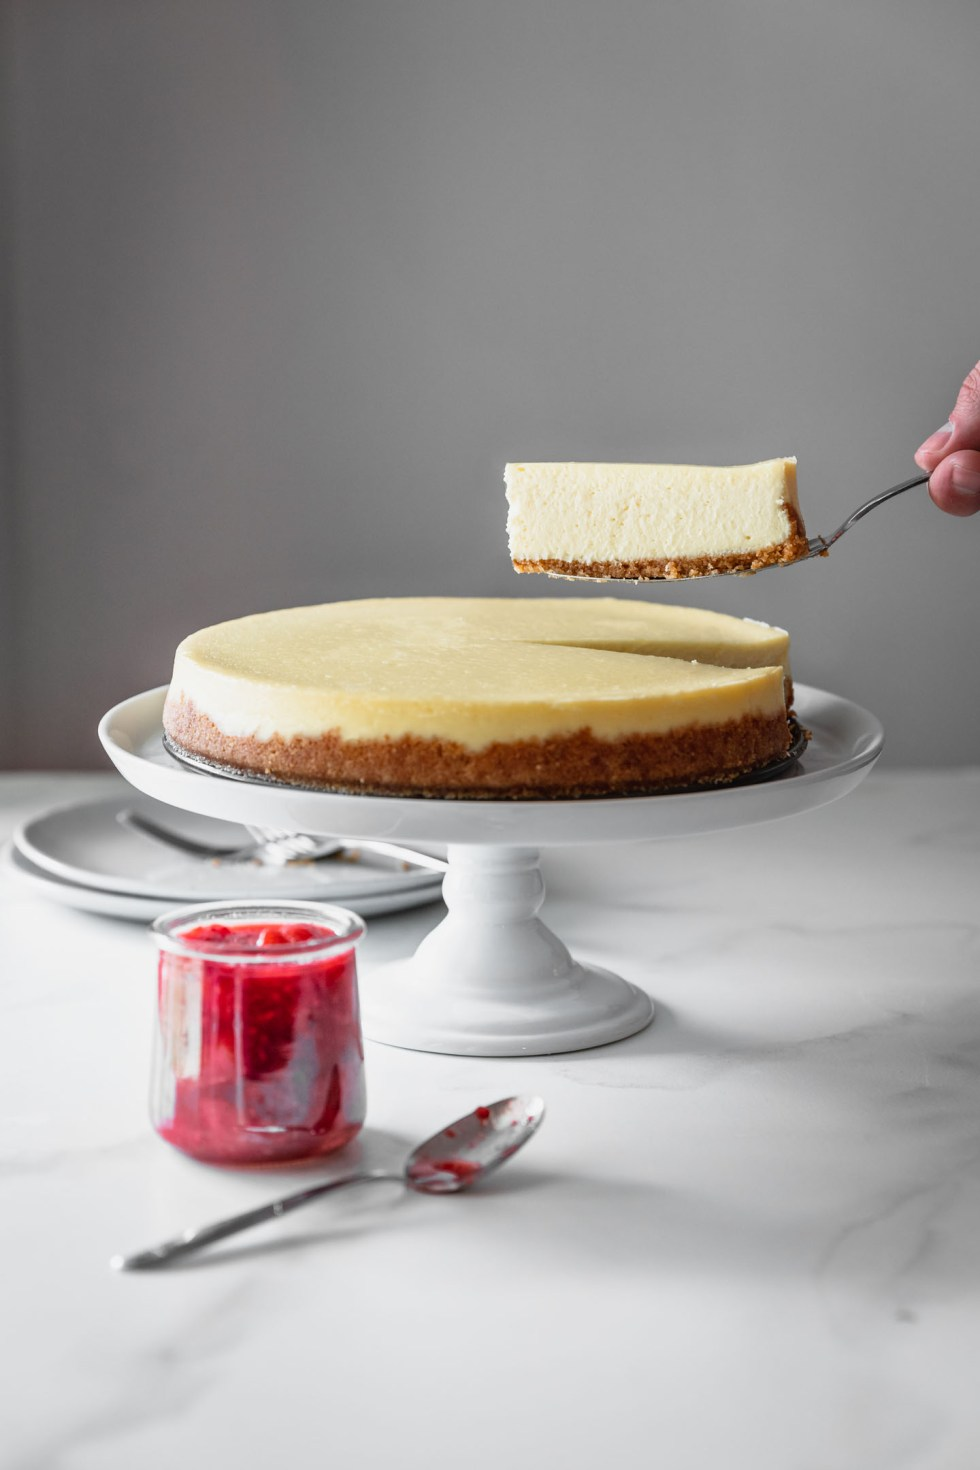 Slice of cheesecake being lifted off the cake stand